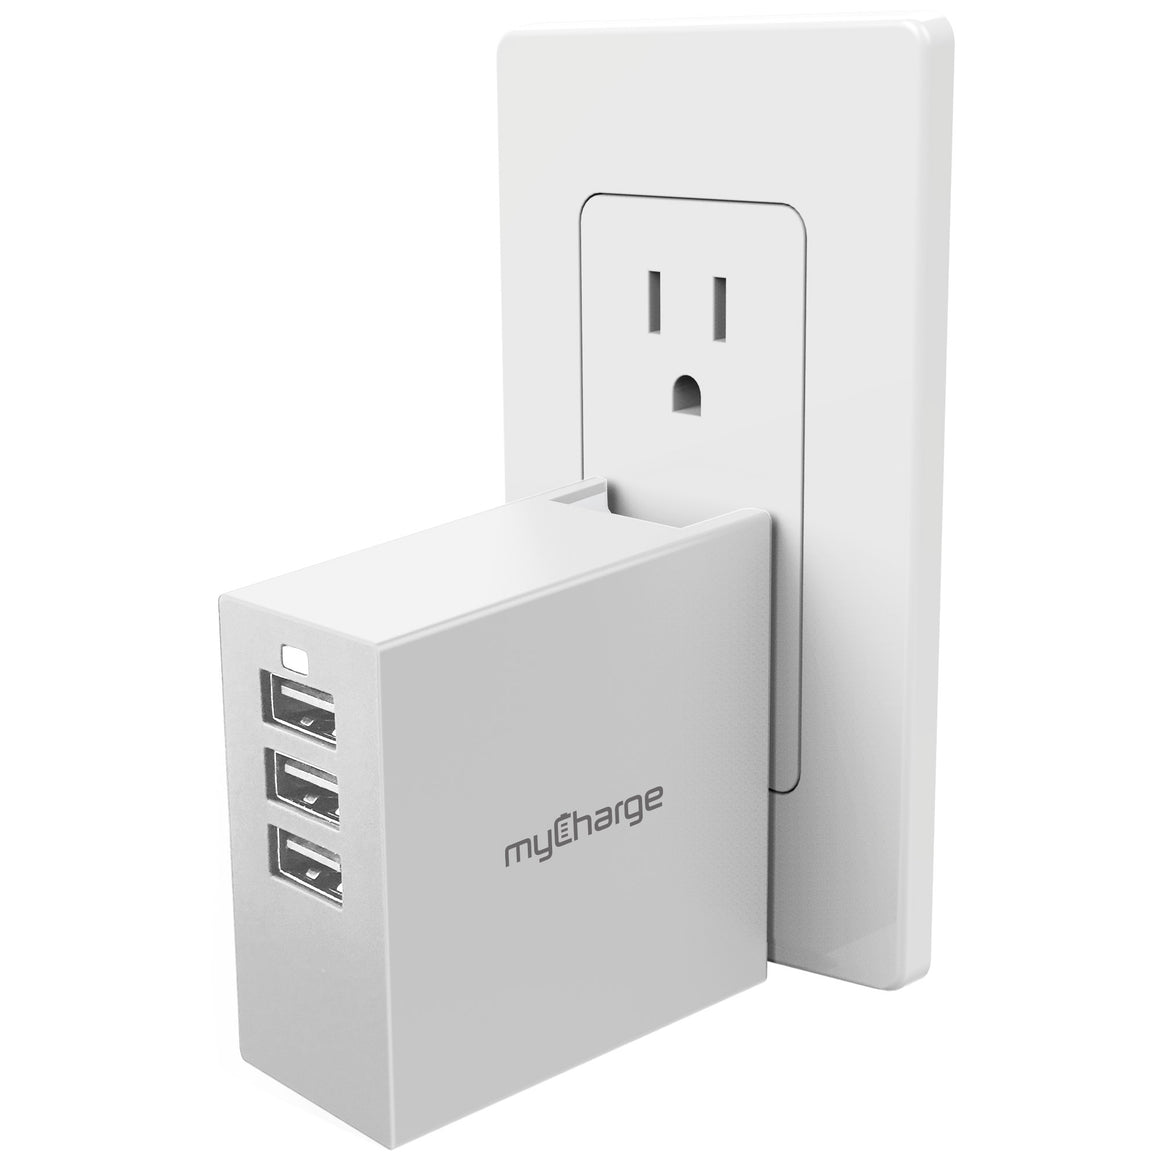 3 Port Wall Charging Adapter for Smartphones & Tablets Plugged In